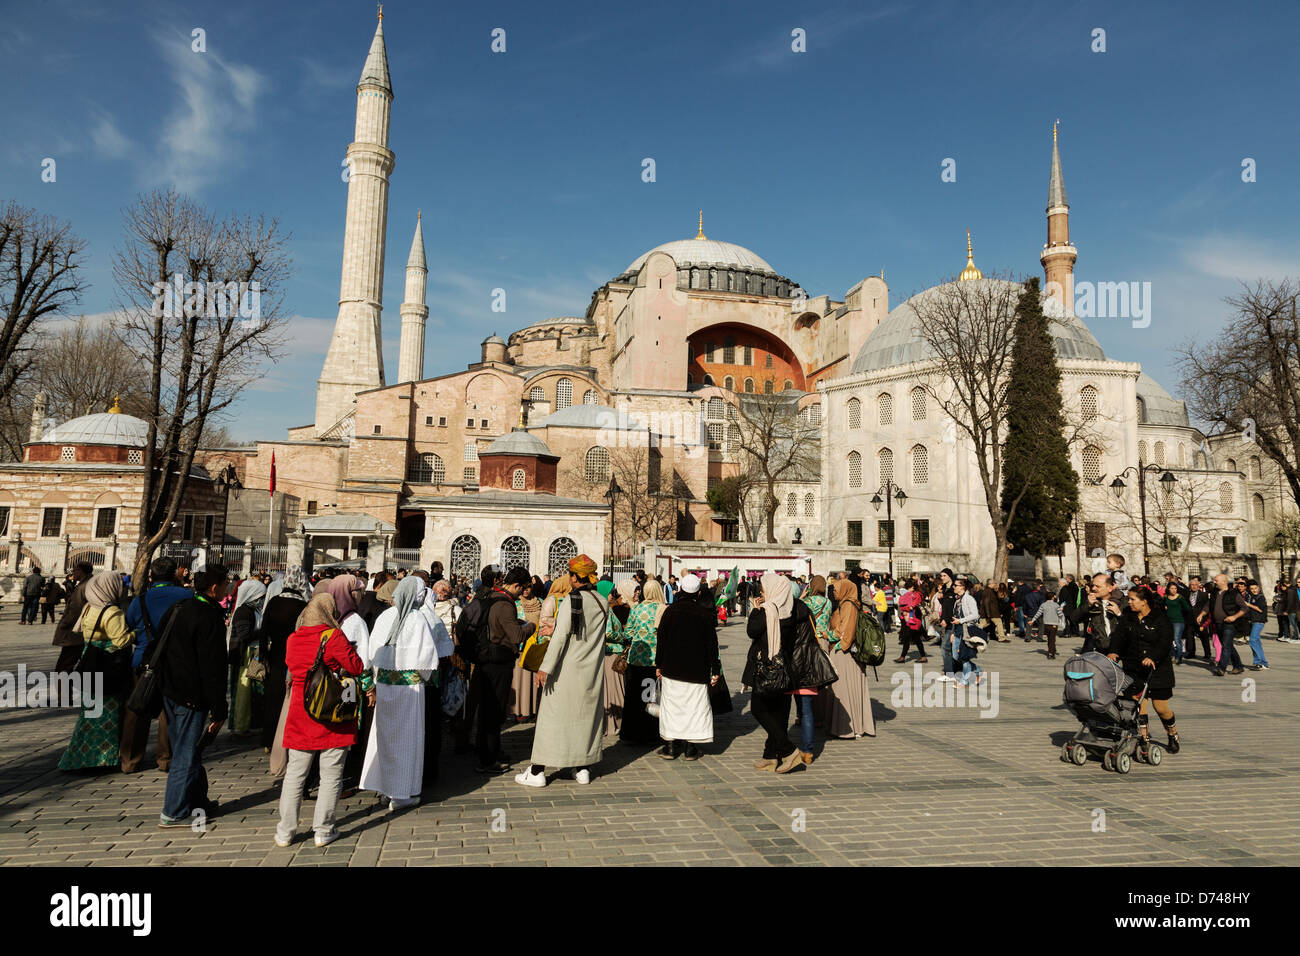 Tourists outside of the Istanbul landmark Hagia Sofia, Turkey. - Stock Image